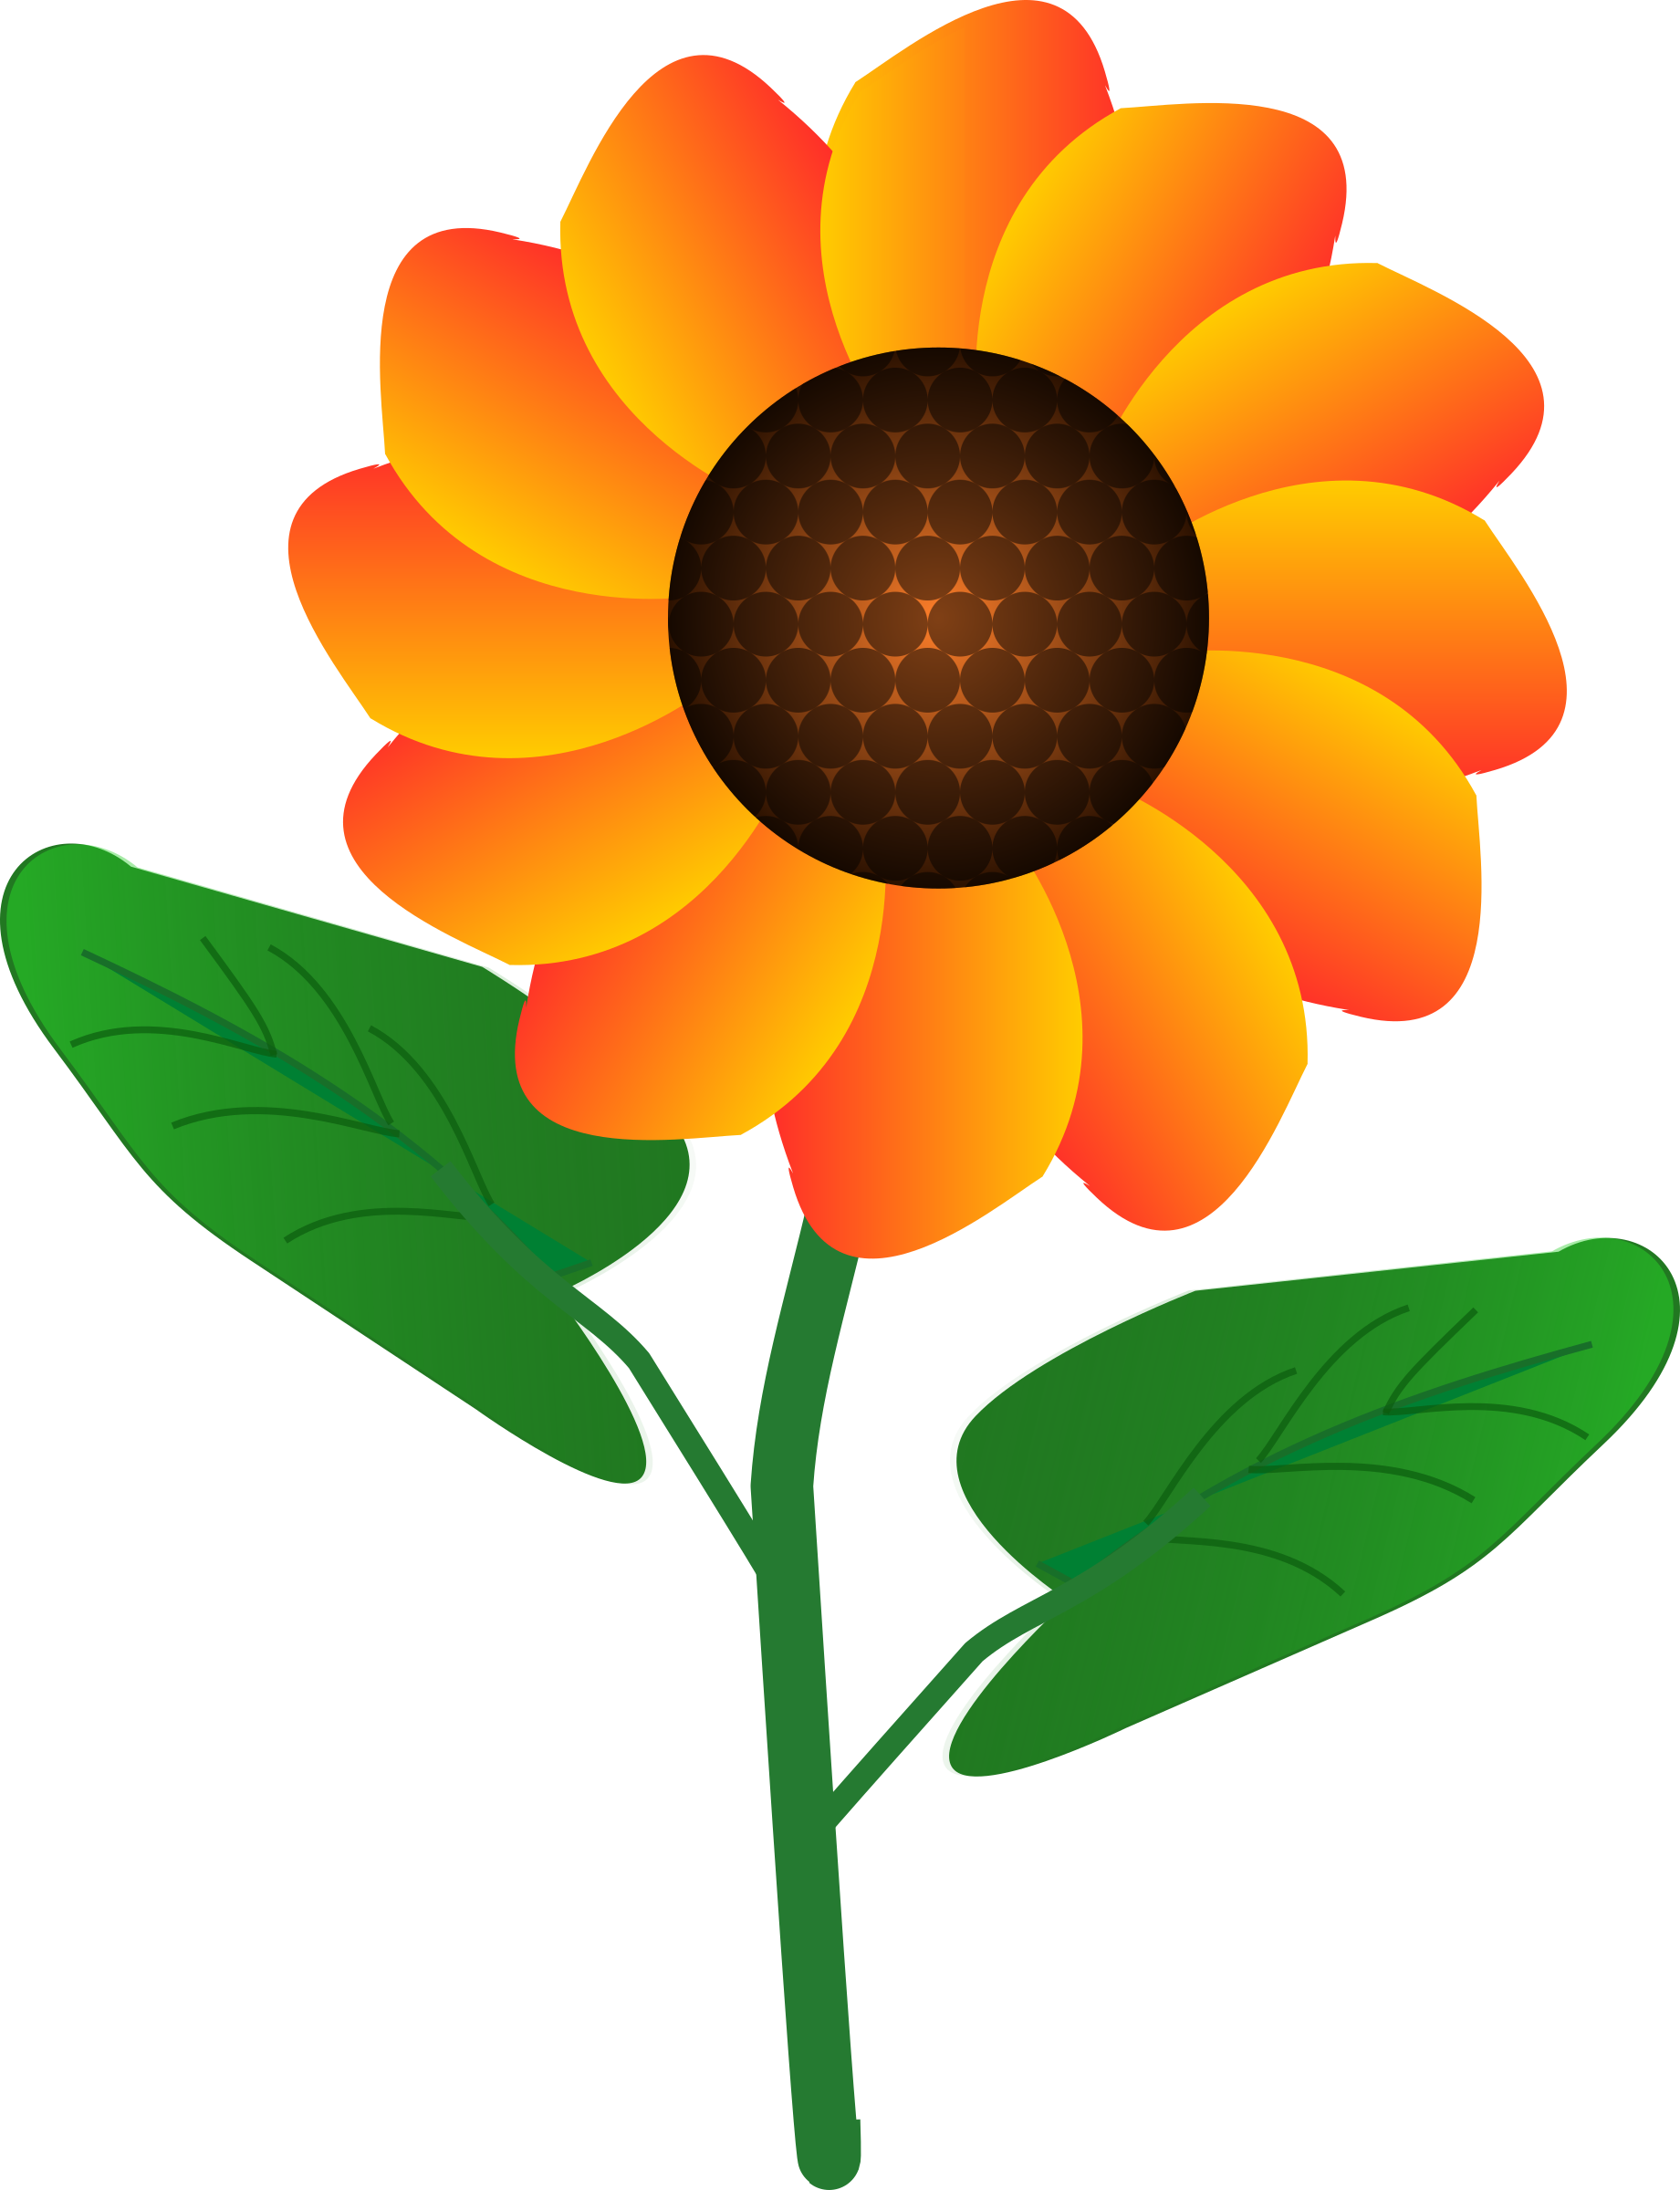 Flower by @tadmac, a simple cartoon flower, on @openclipart